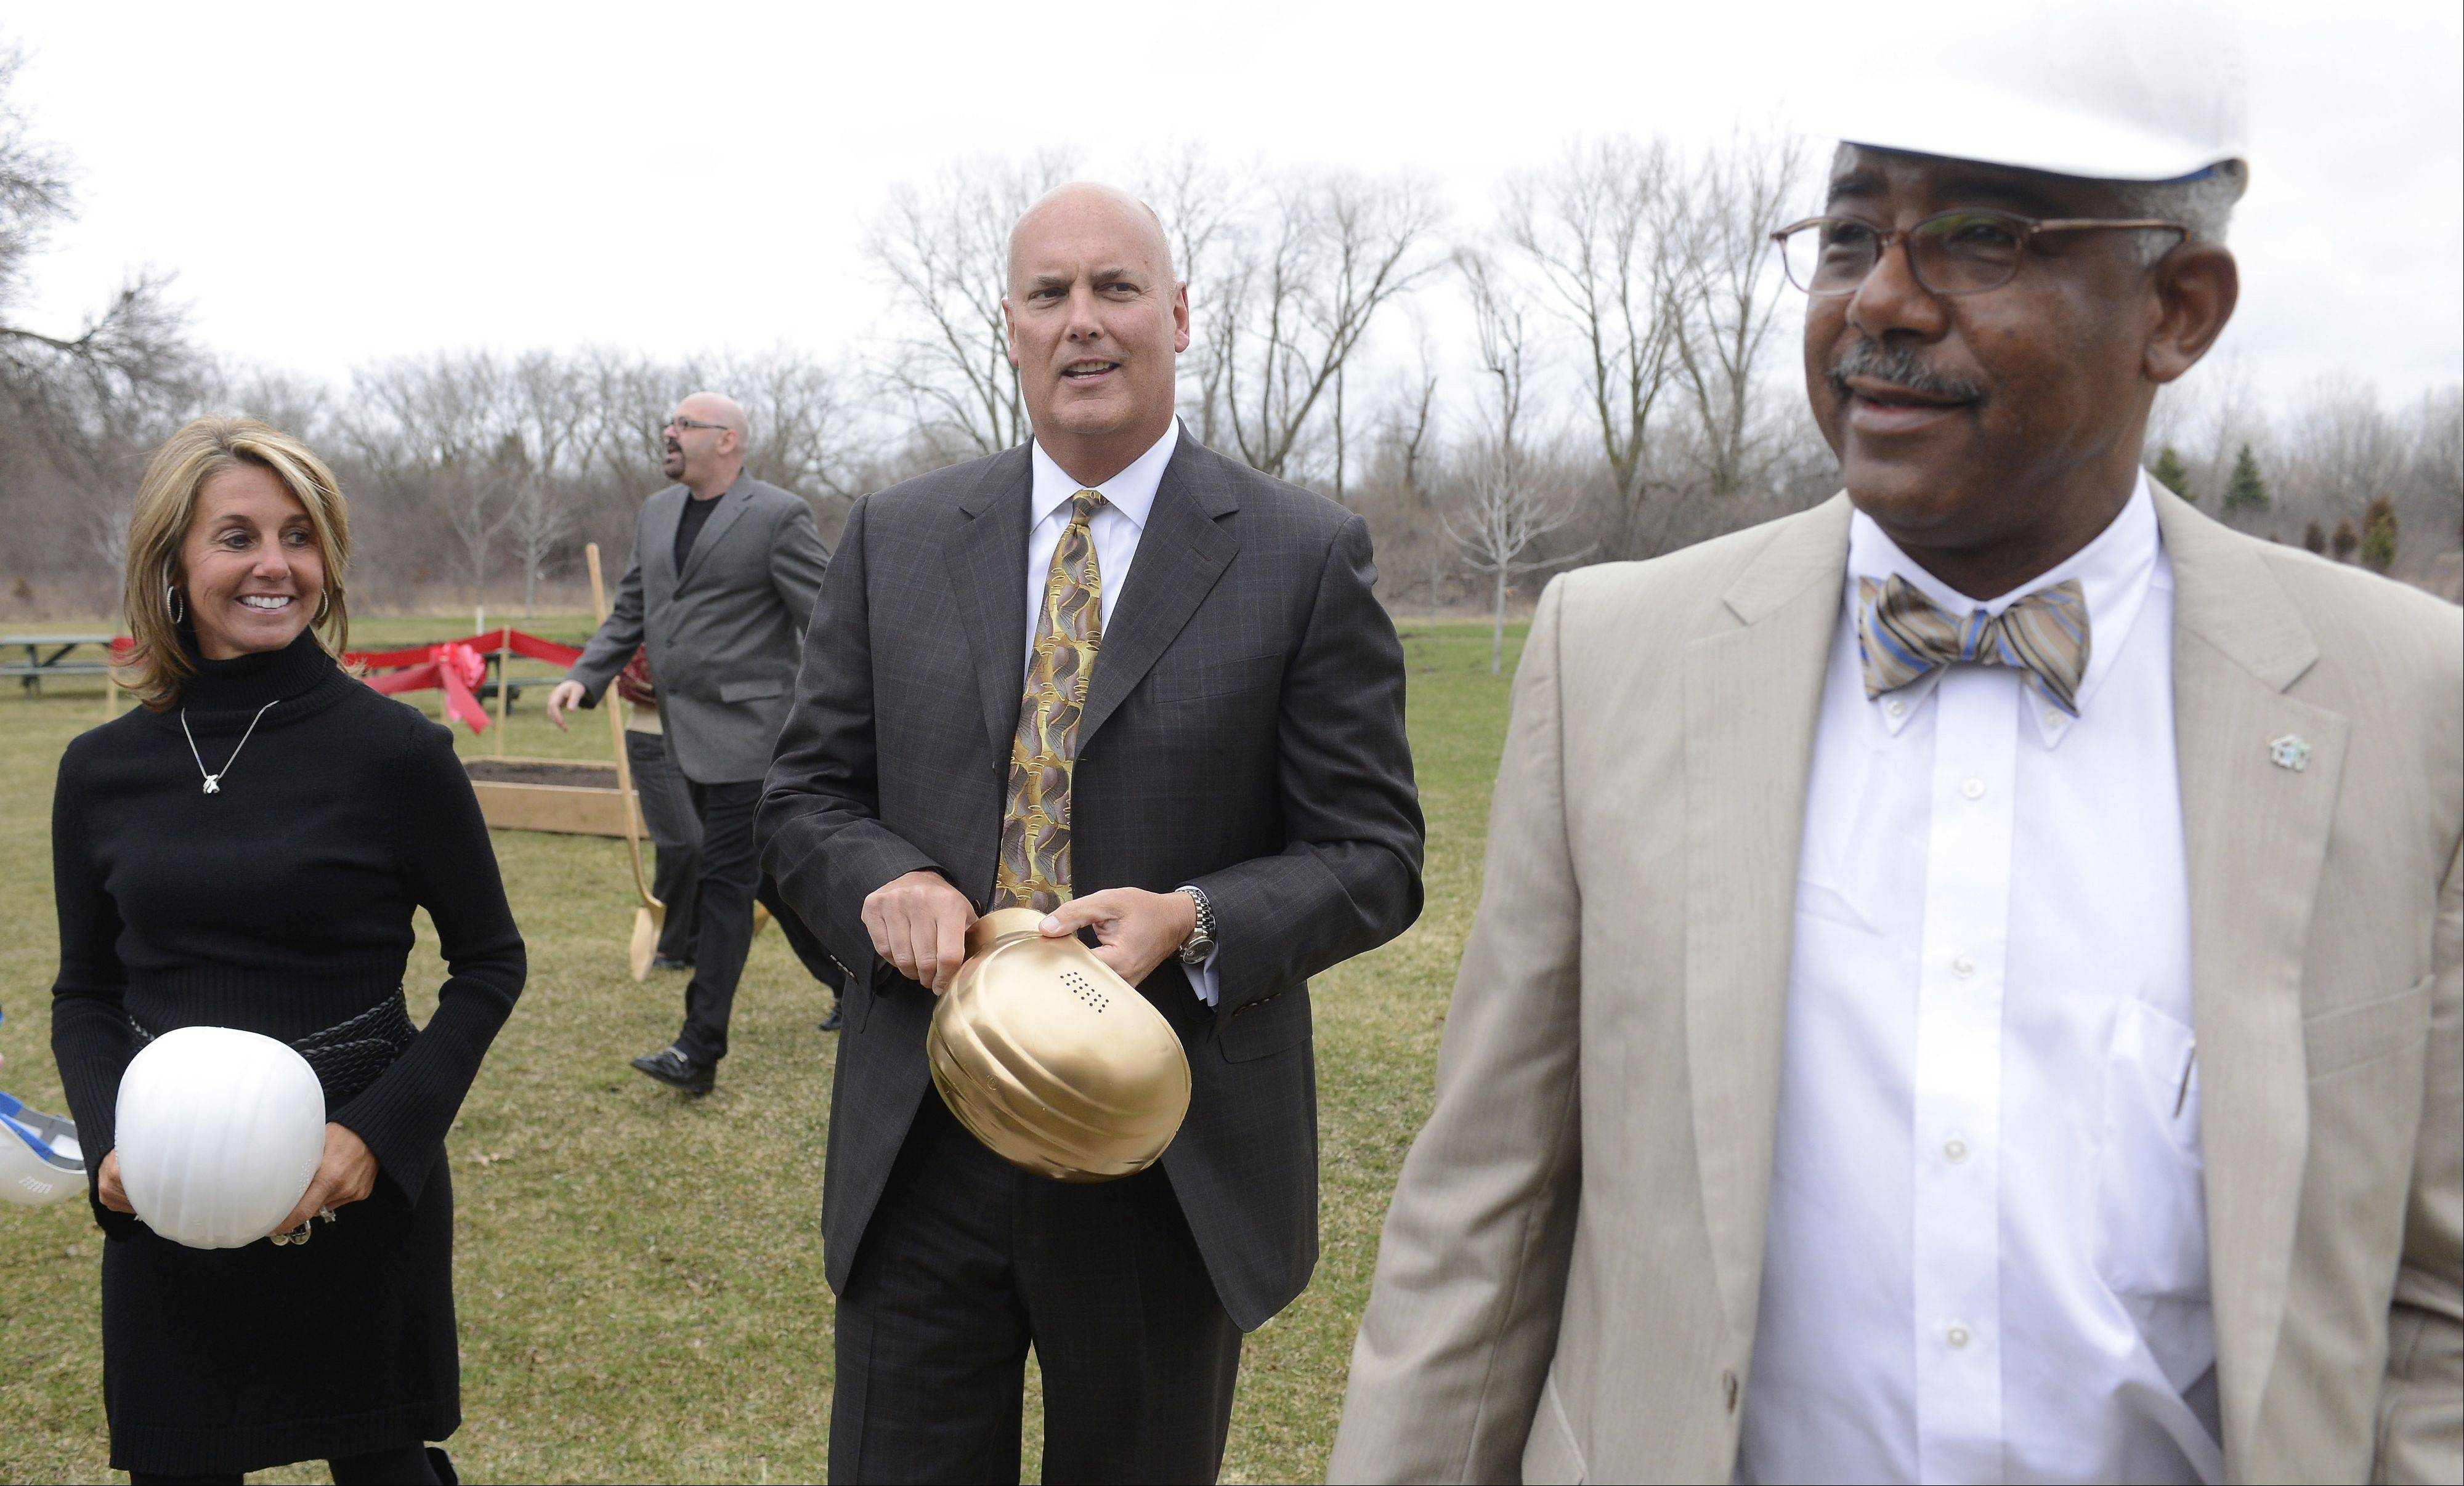 Little City Executive Director Shawn Jeffers, right, walks with Becky and John Duffey of Long Grove following the groundbreaking Friday afternoon.